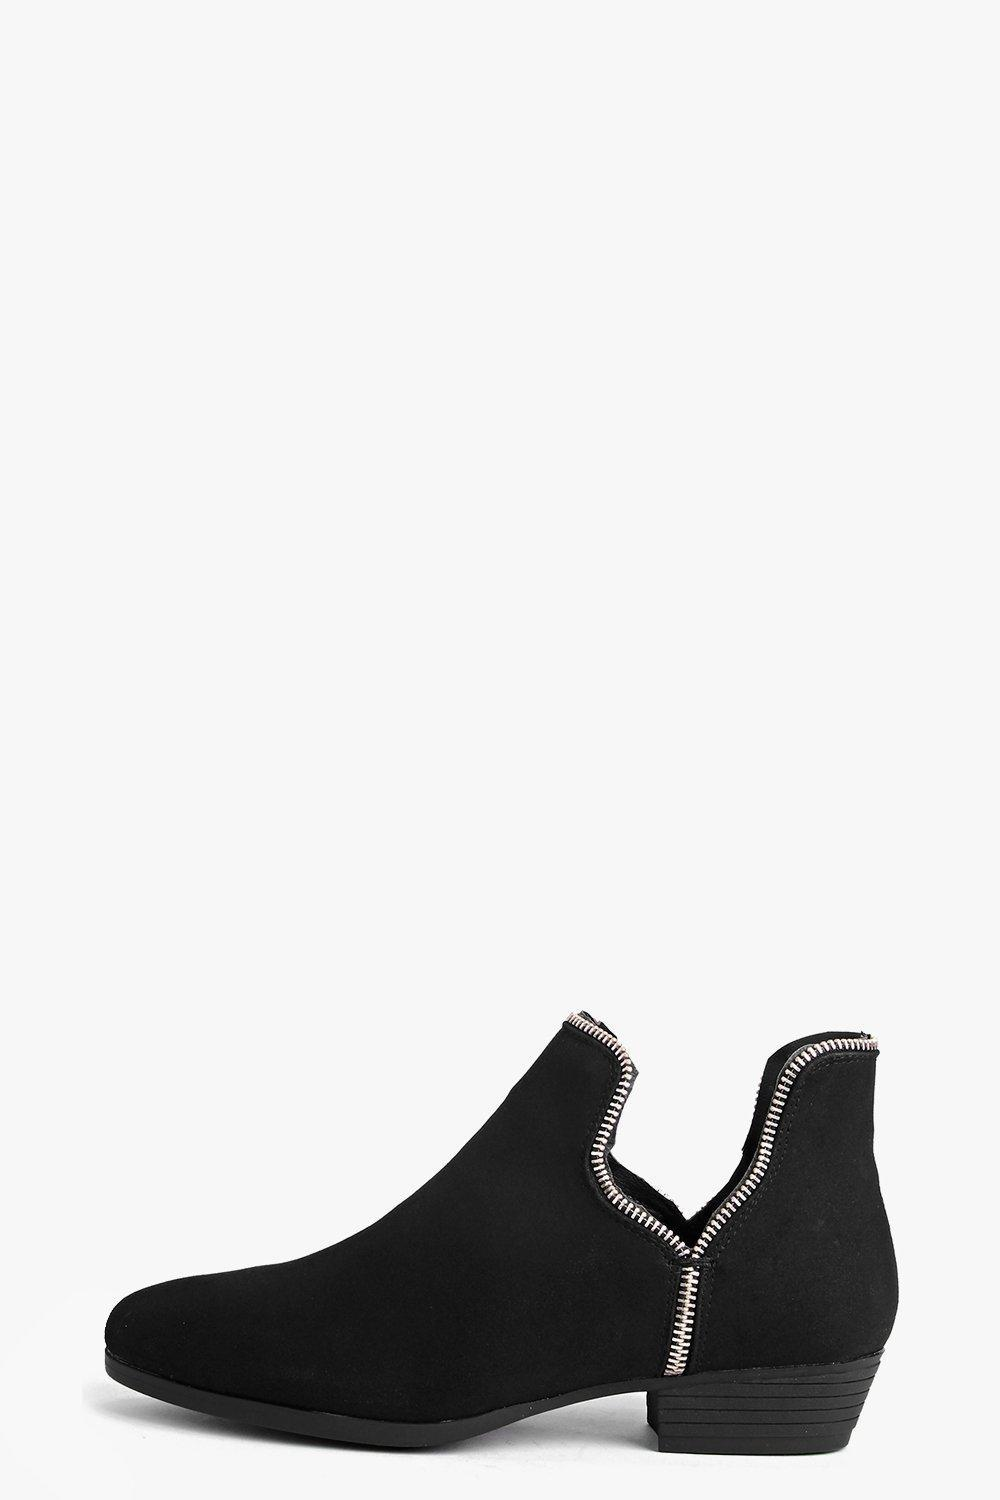 Zip Trim Cut Away Ankle Boot Black - predominant colour: black; occasions: casual, creative work; material: faux leather; heel height: flat; heel: standard; toe: round toe; boot length: ankle boot; style: standard; finish: plain; pattern: plain; wardrobe: basic; season: a/w 2016